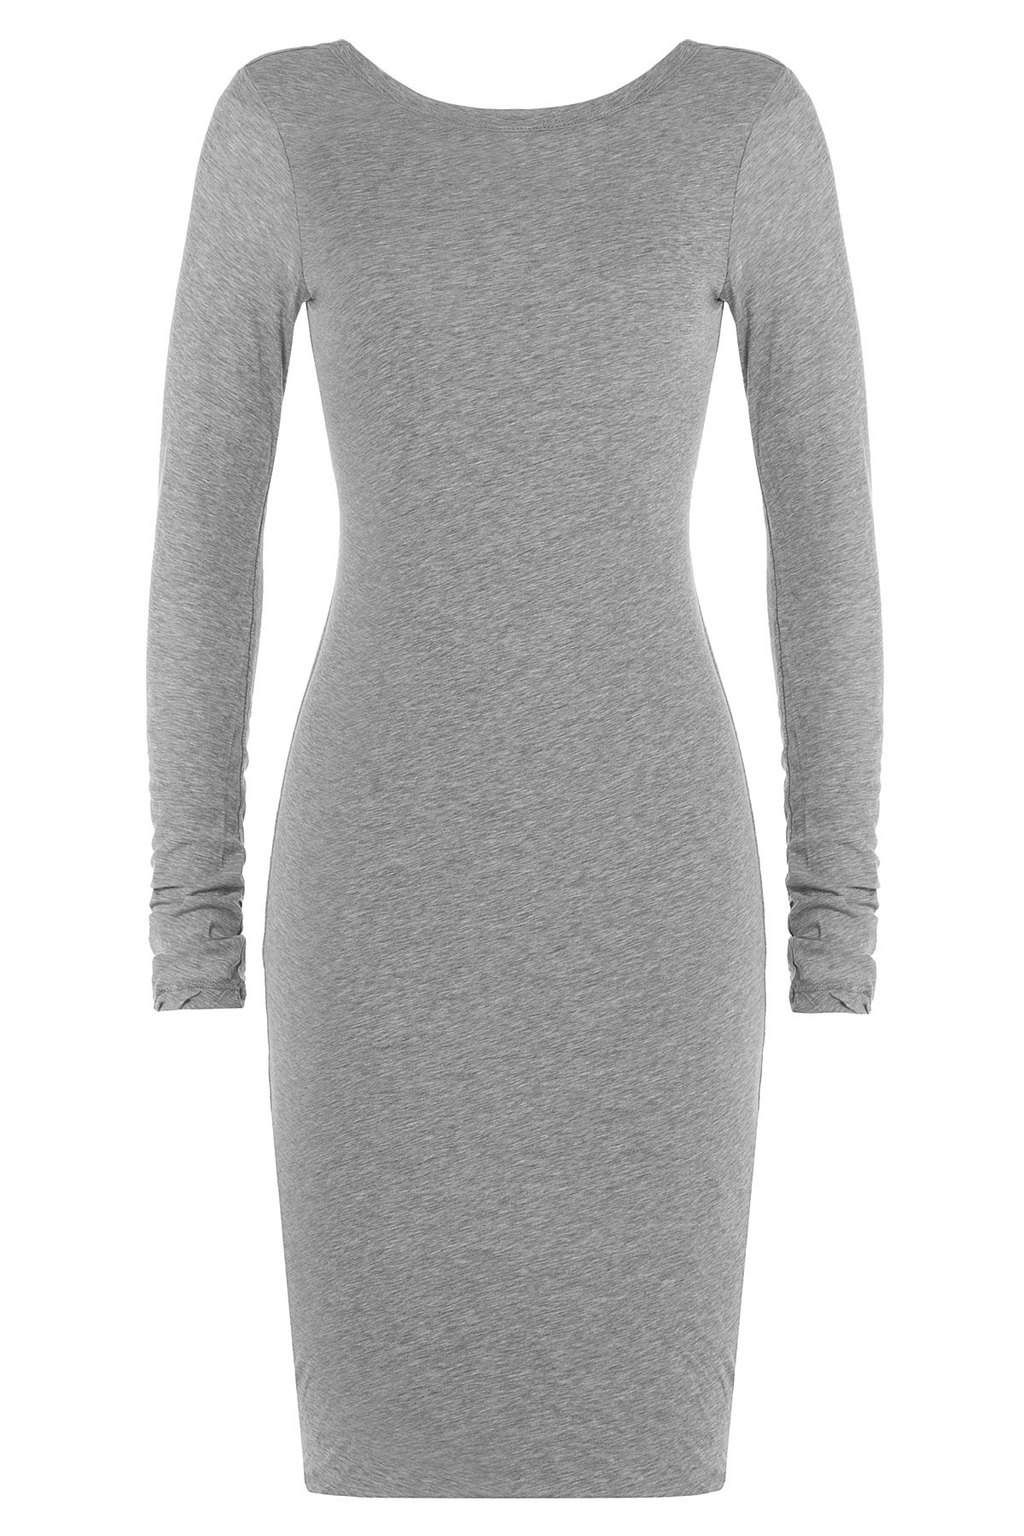 Cotton Dress - neckline: round neck; fit: tight; pattern: plain; style: bodycon; predominant colour: light grey; length: on the knee; sleeve length: long sleeve; sleeve style: standard; pattern type: fabric; texture group: jersey - stretchy/drapey; occasions: creative work; season: a/w 2015; wardrobe: investment